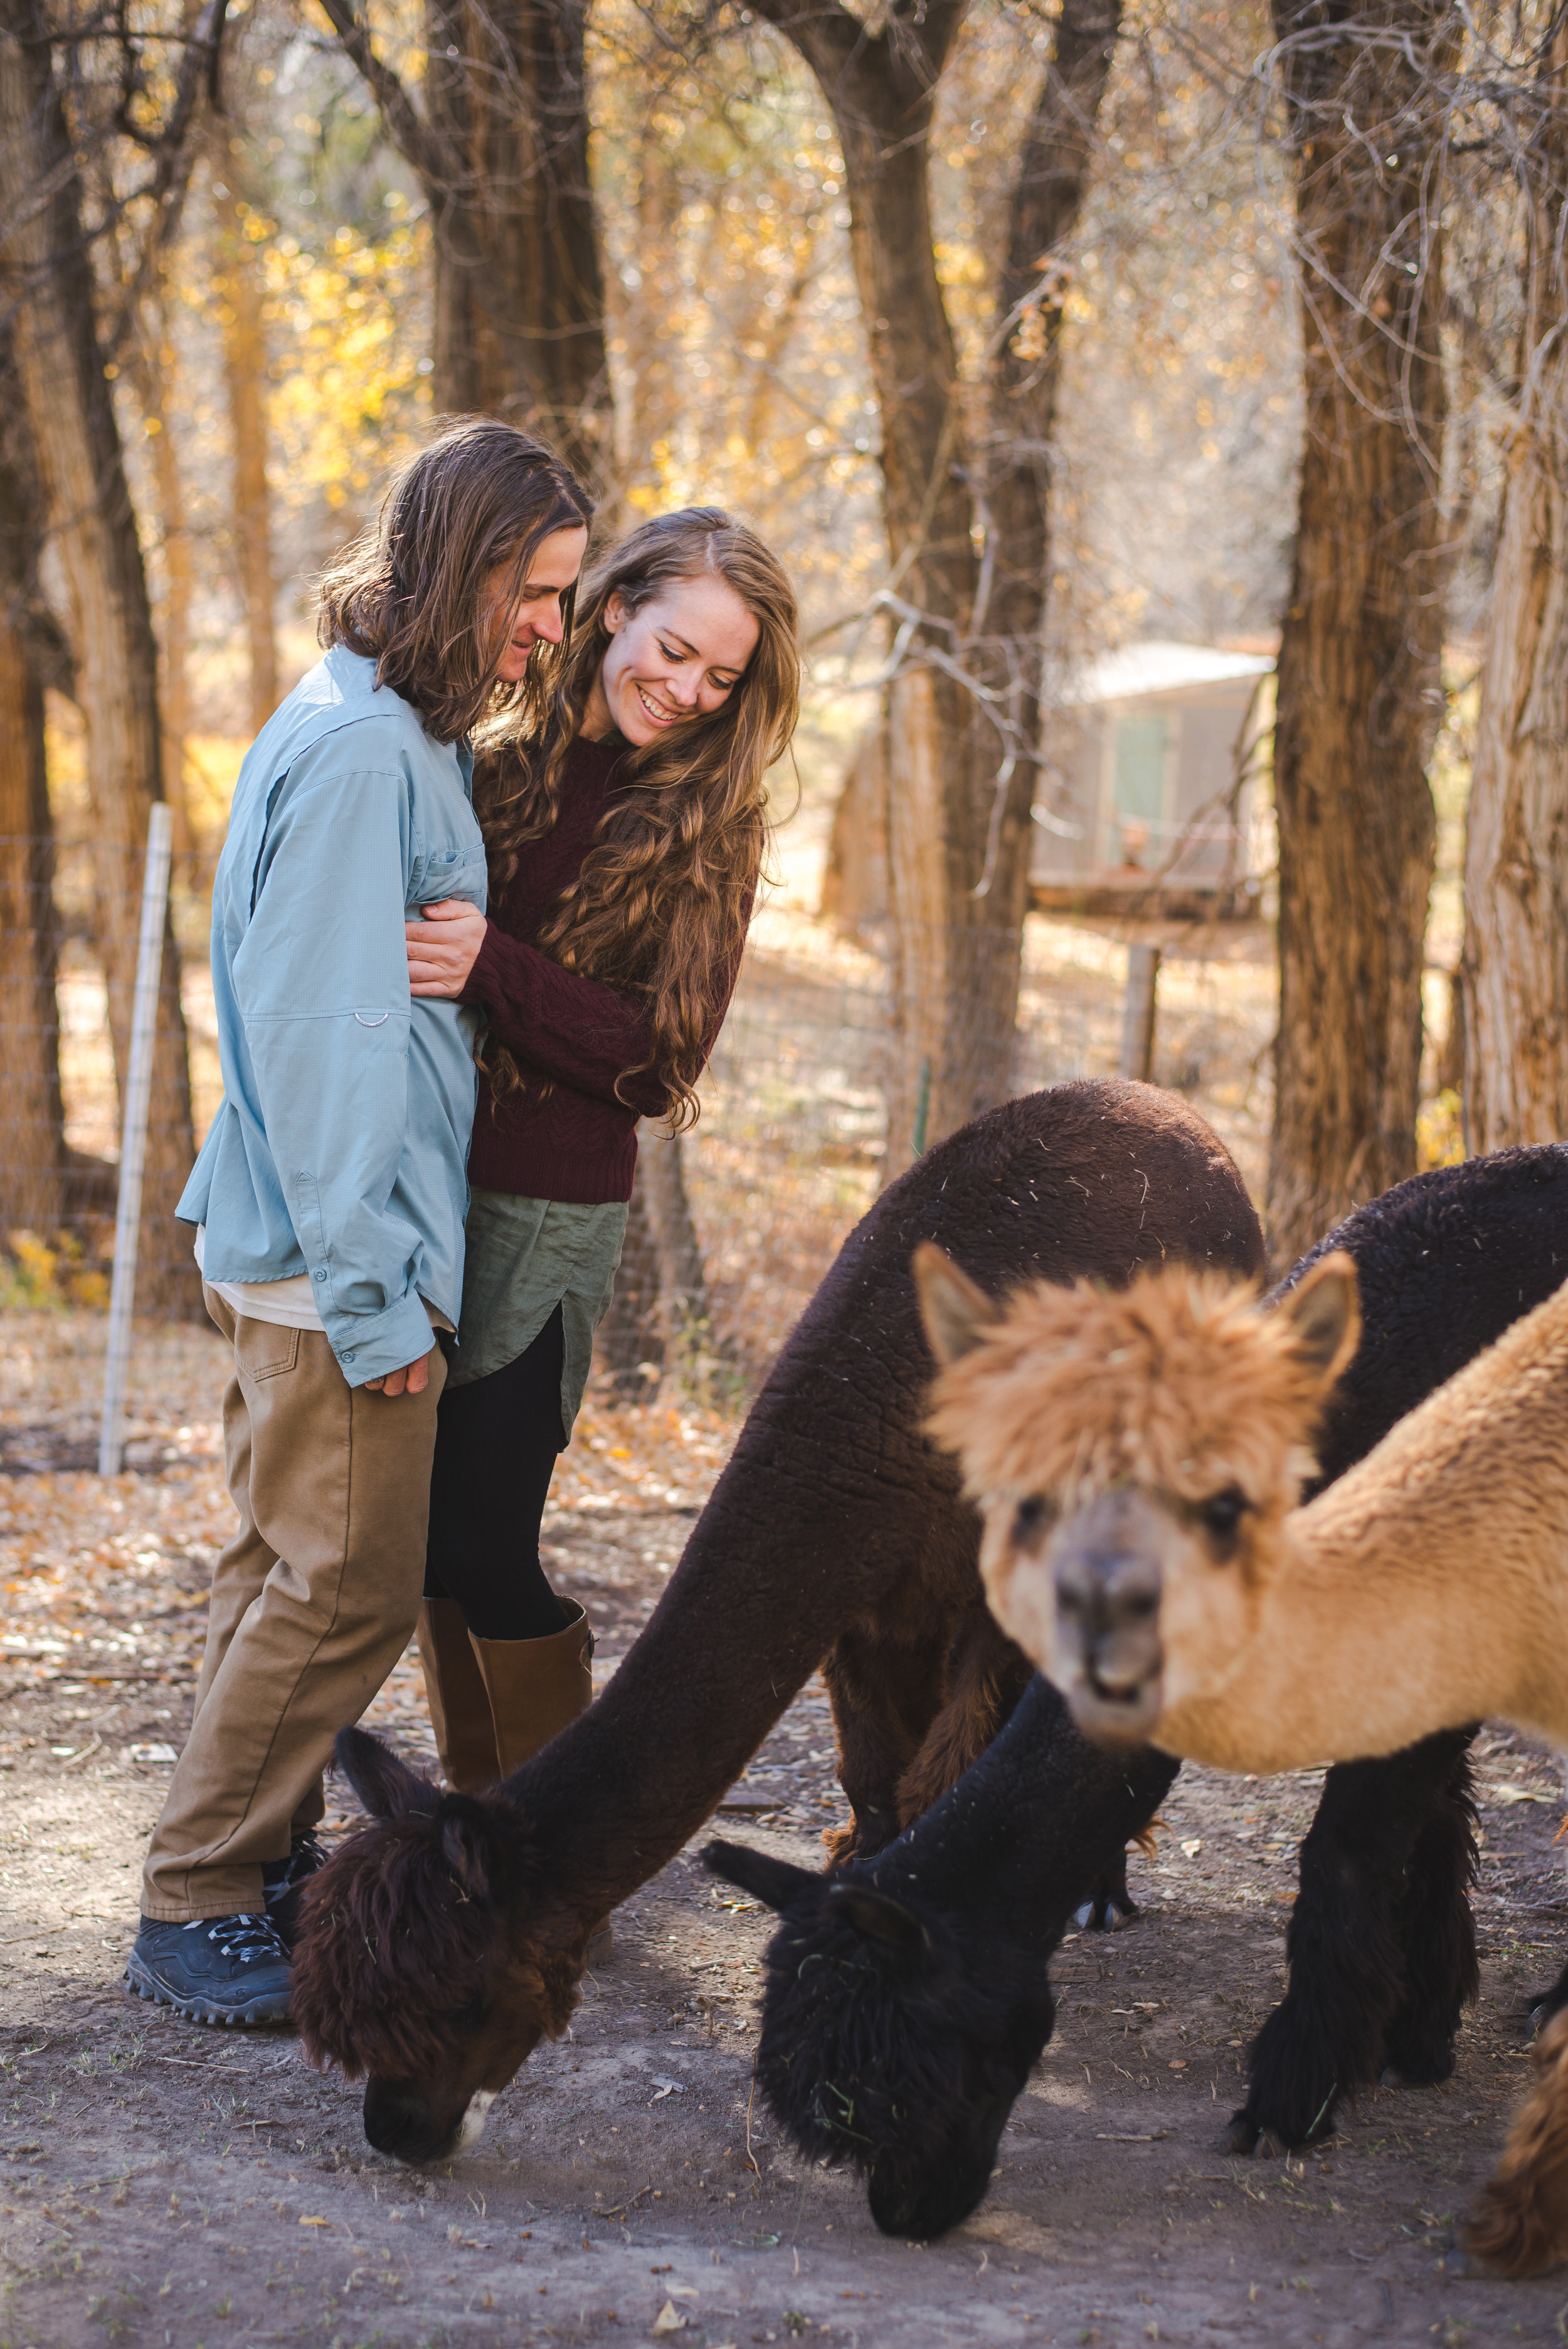 late fall engagement photos at a farm in edwards, colorado with alpacas